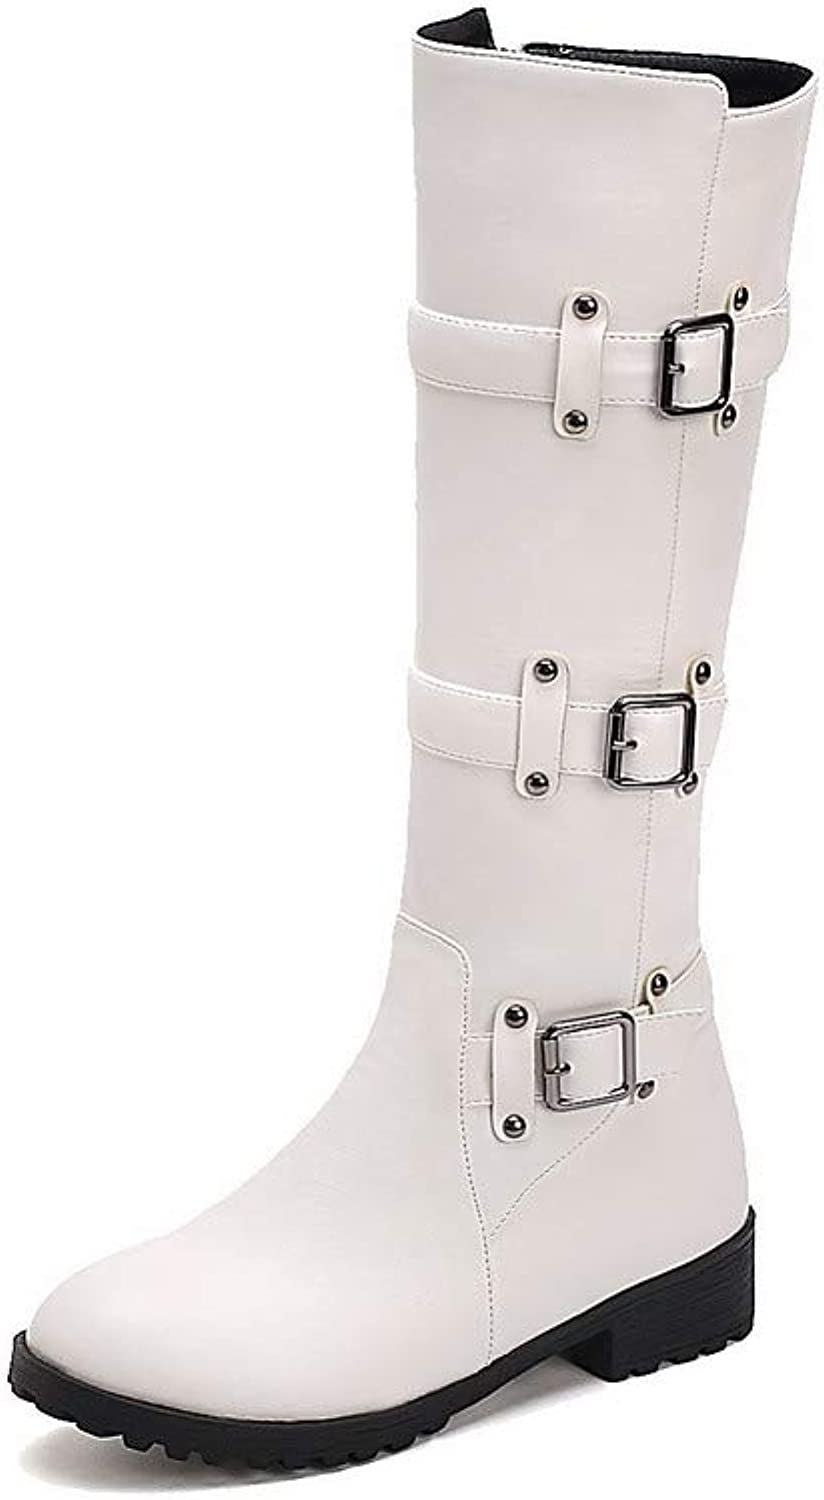 AmoonyFashion Women's Solid Low-Heels Round-Toe Pu Zipper Boots, BUSXT125046